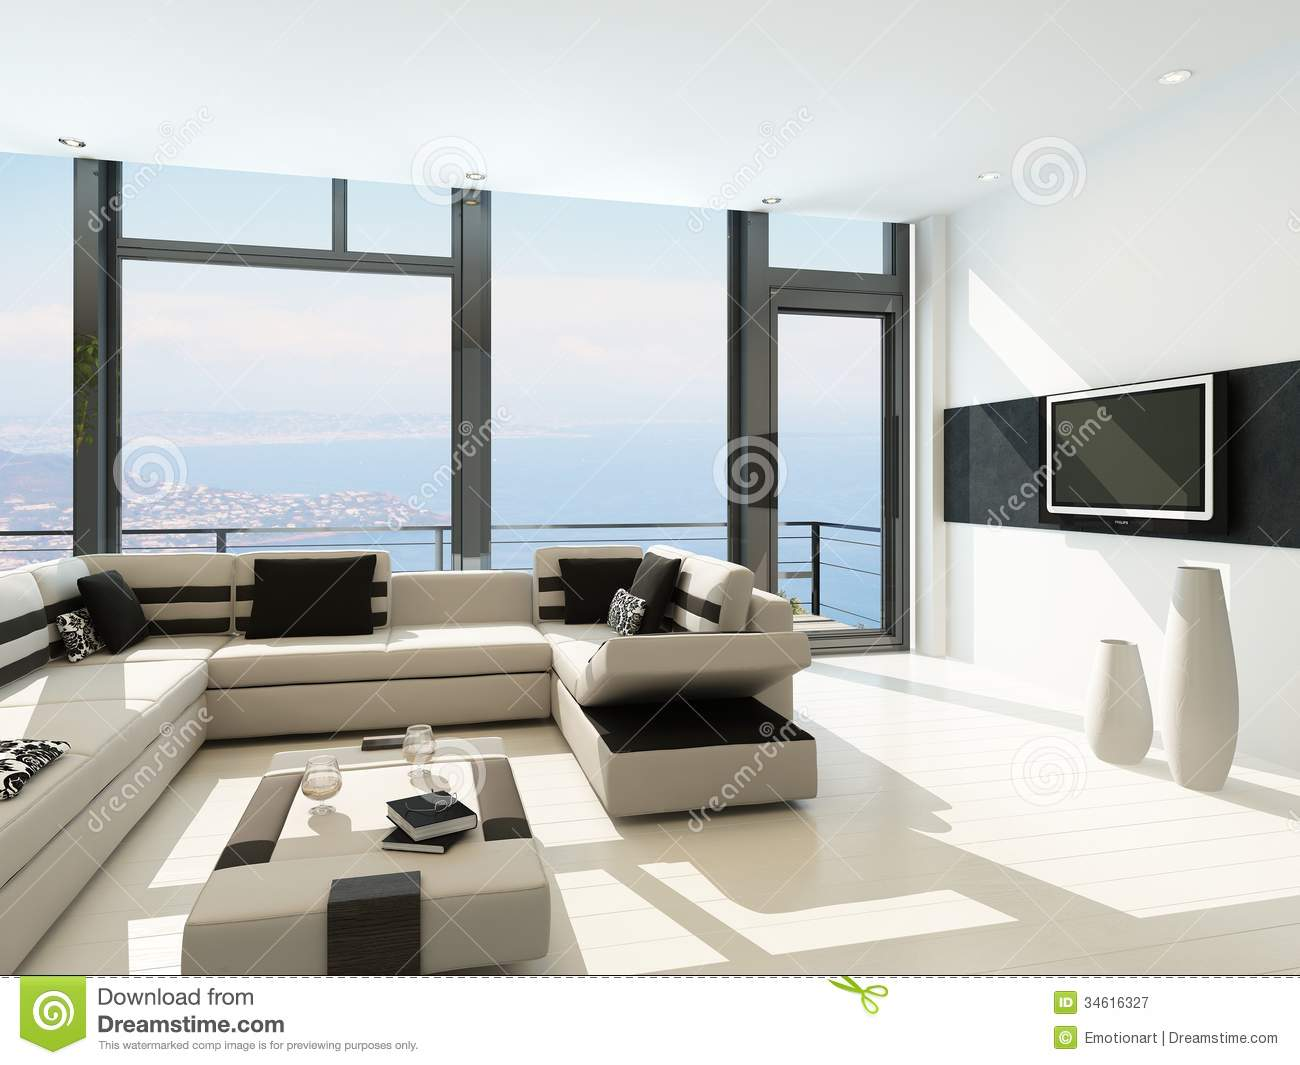 Living Room View luxury living room interior with white couch and seascape view